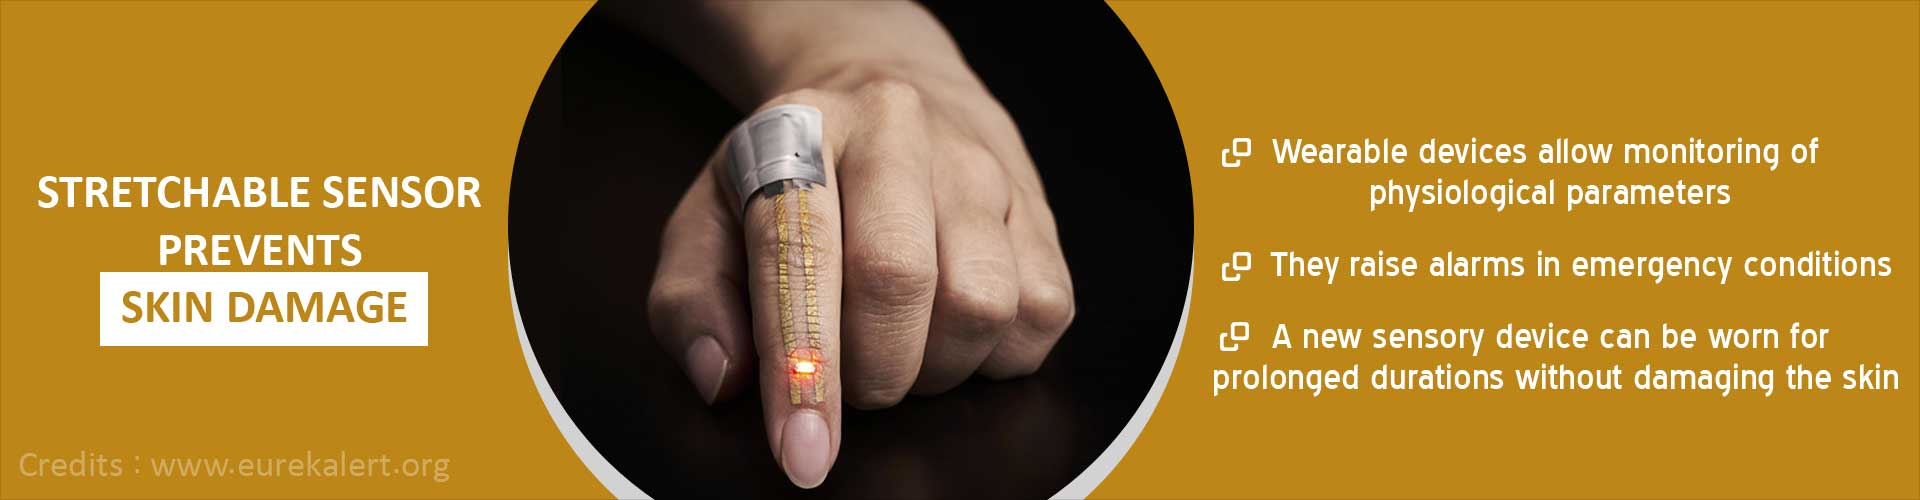 Stretchable sensor prevents skin damage